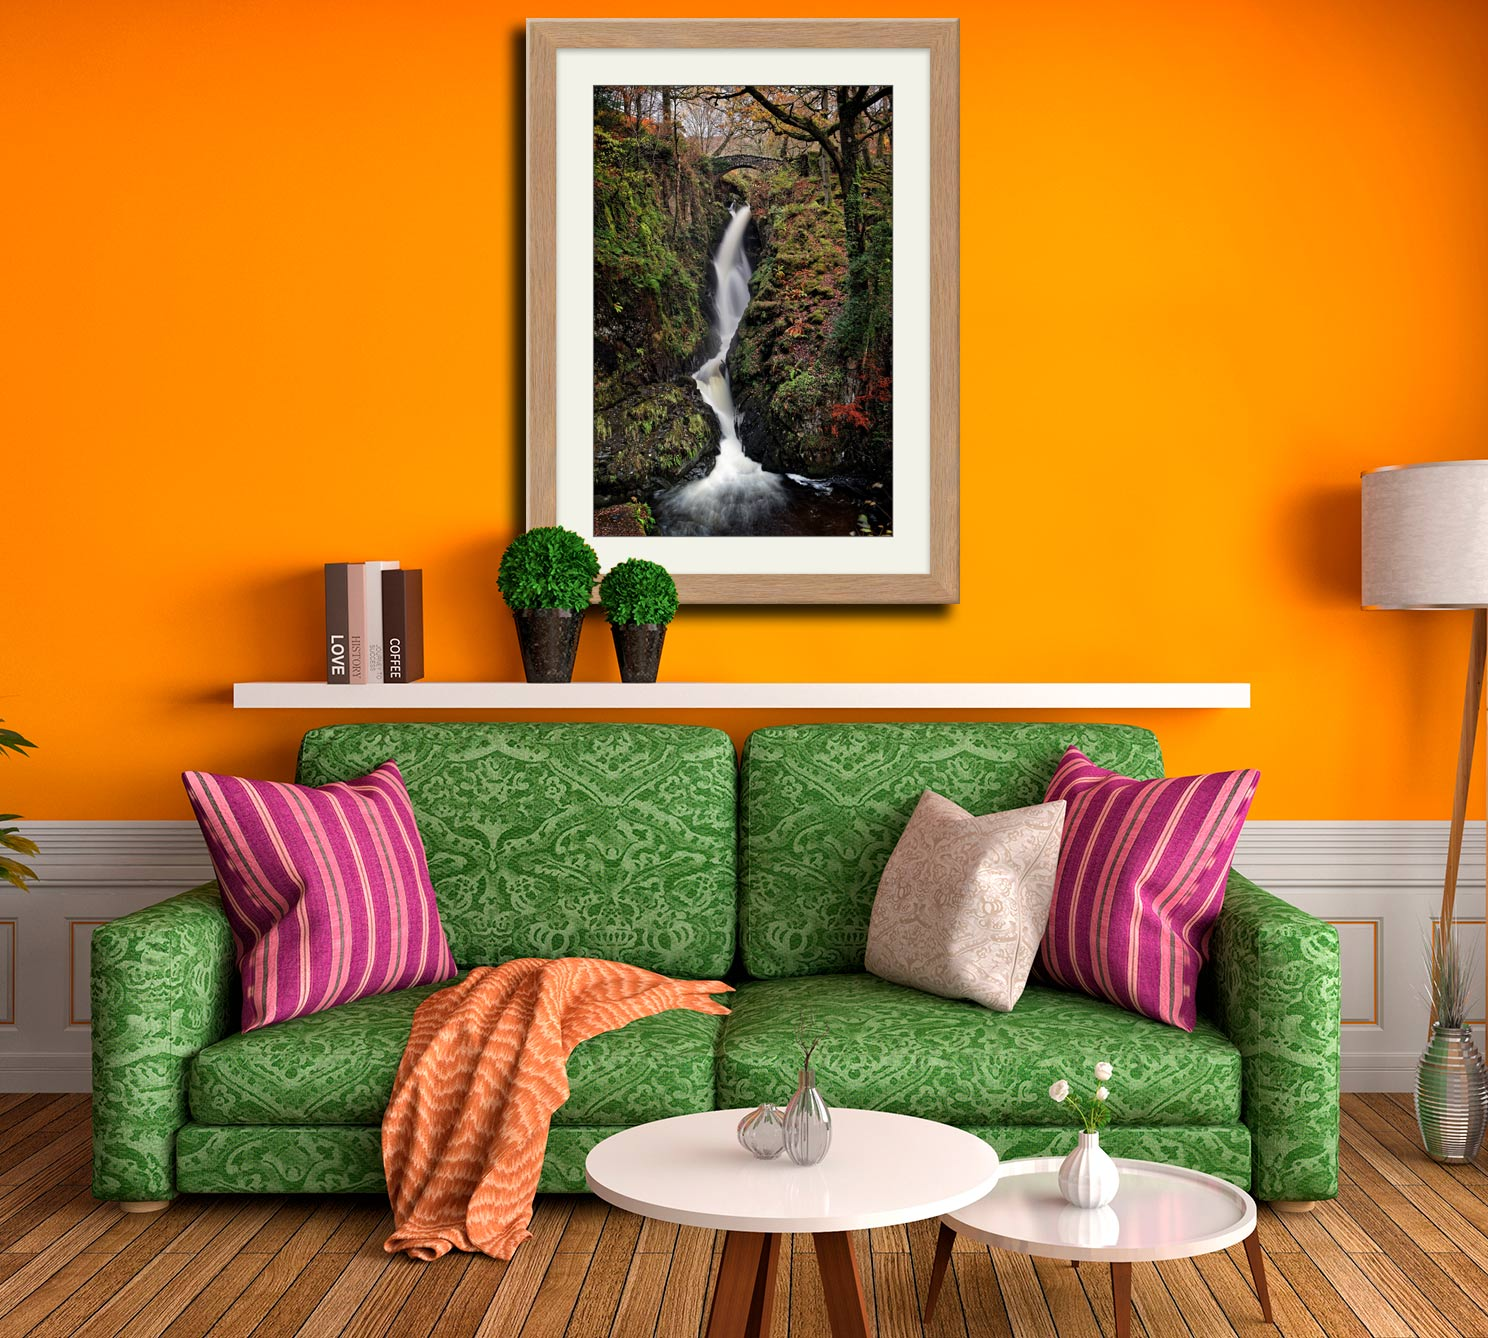 Aira in Full Force - Framed Print with Mount on Wall